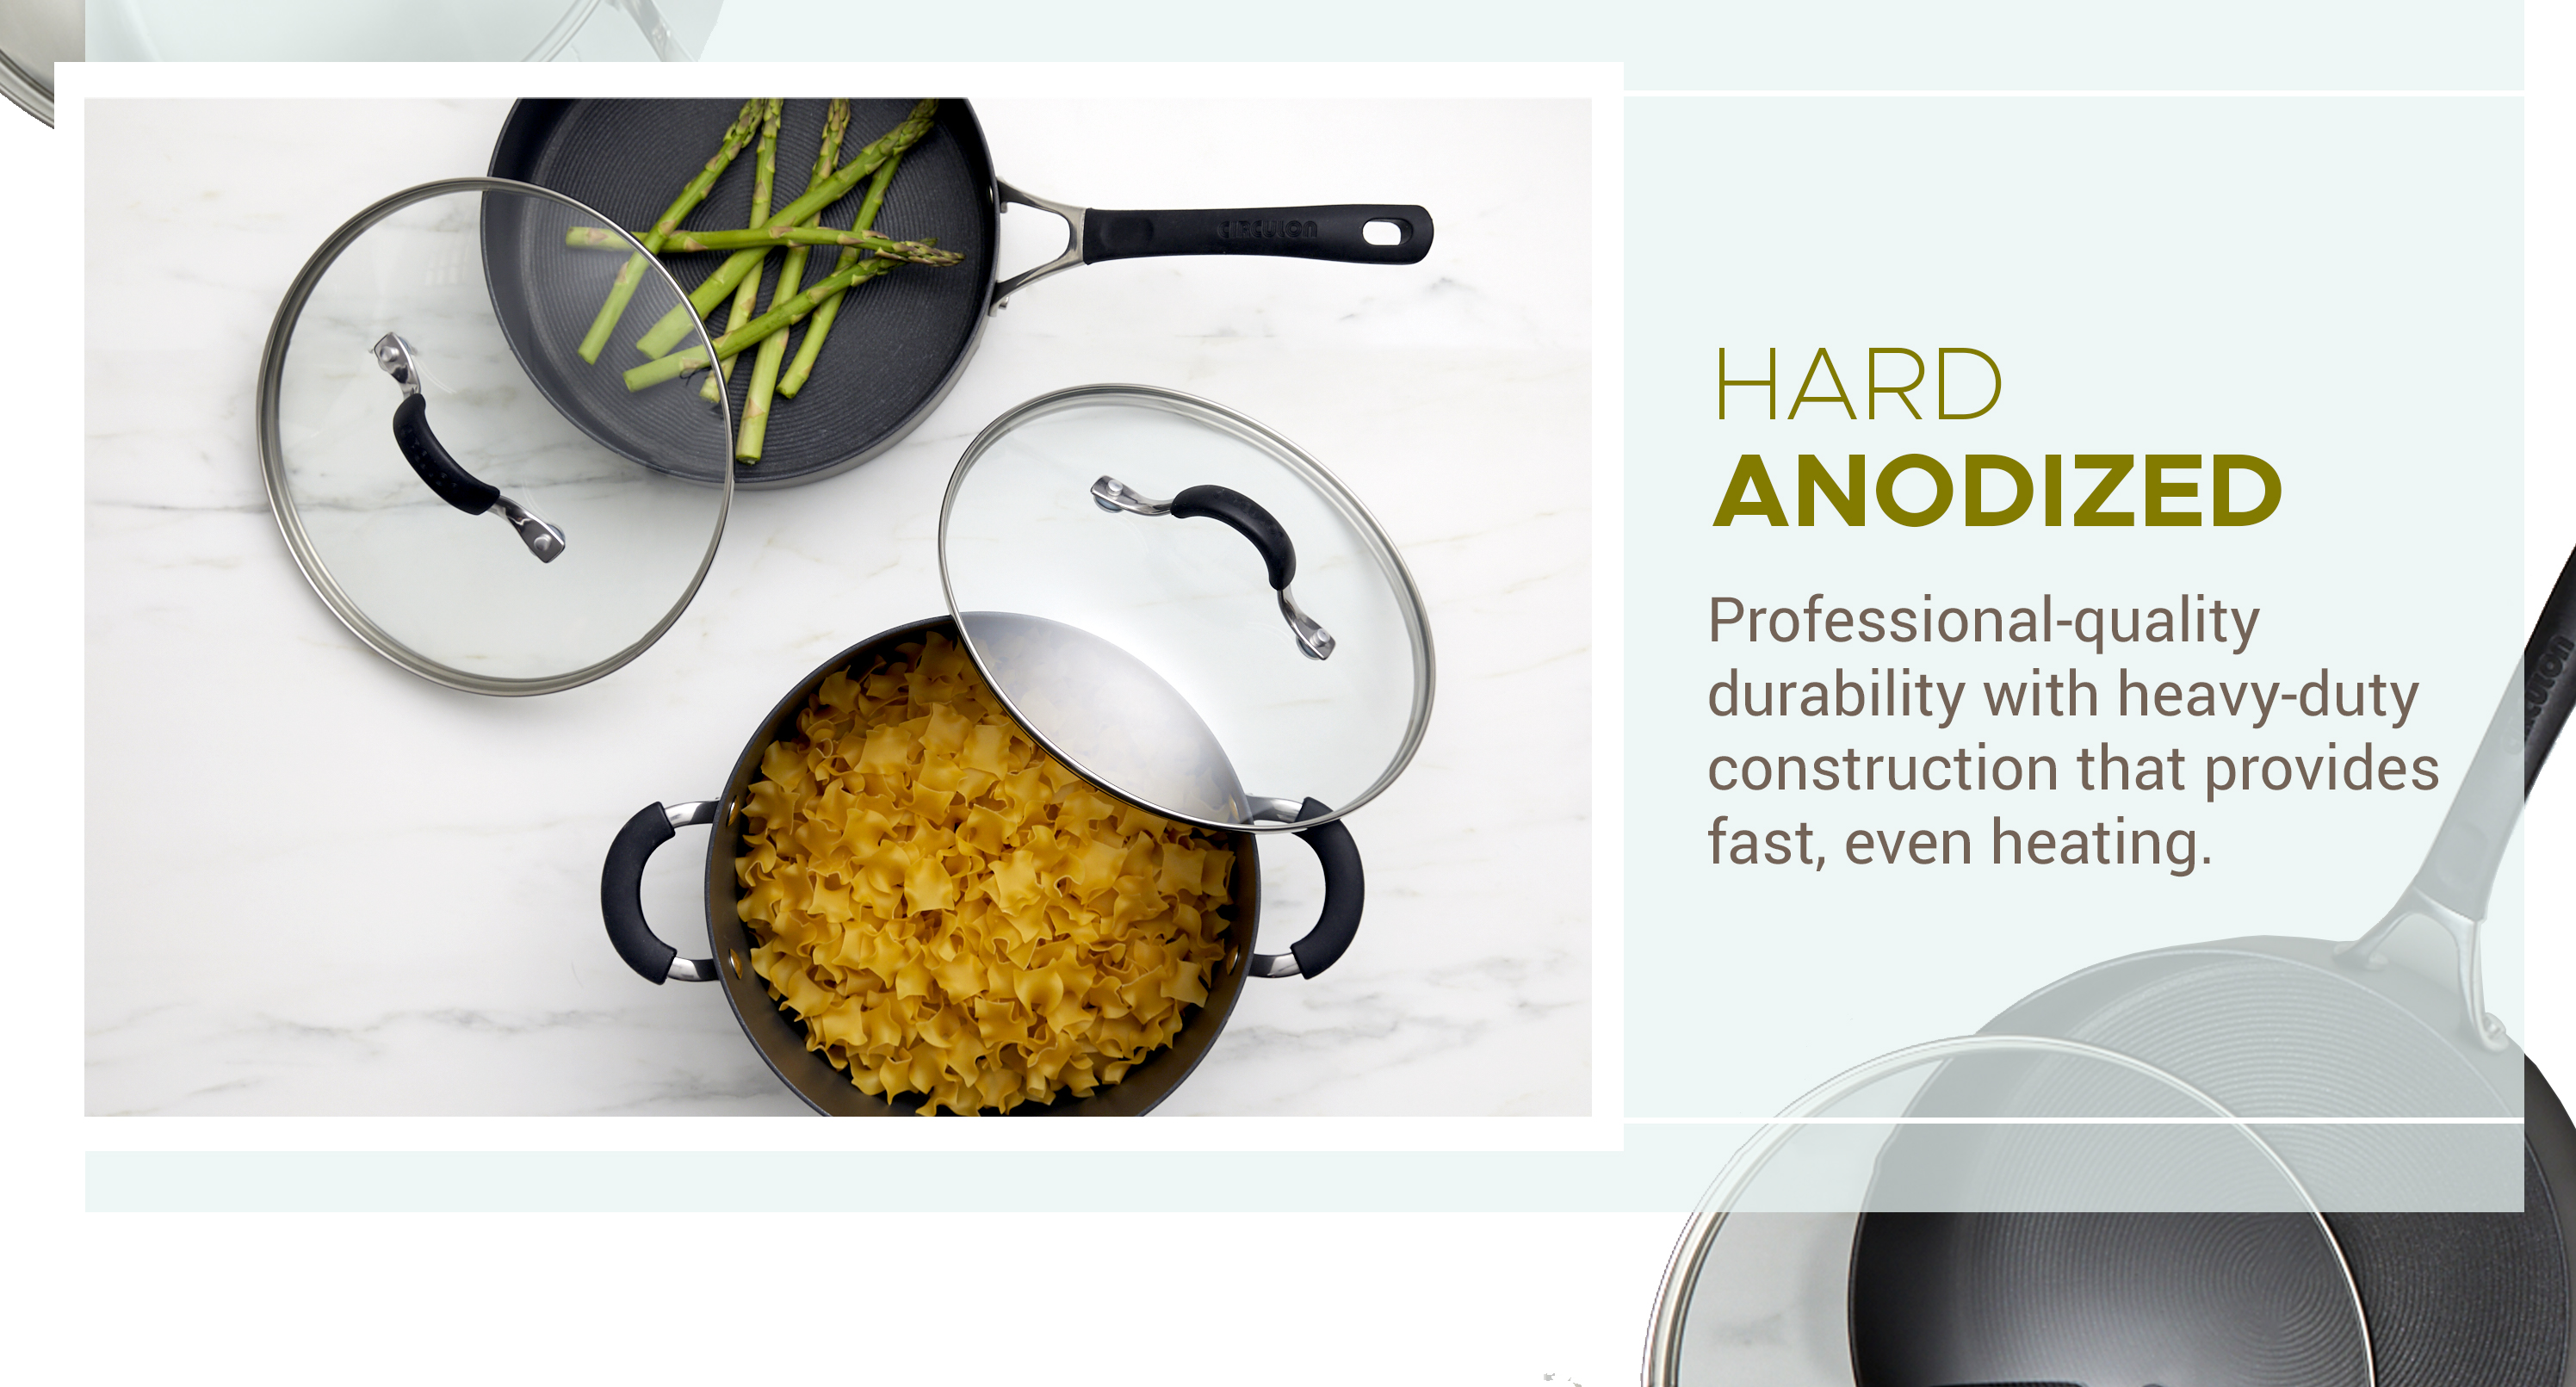 Hard Anodized - Professional-quality durability with heavy-duty construction that provides fast, even heating.